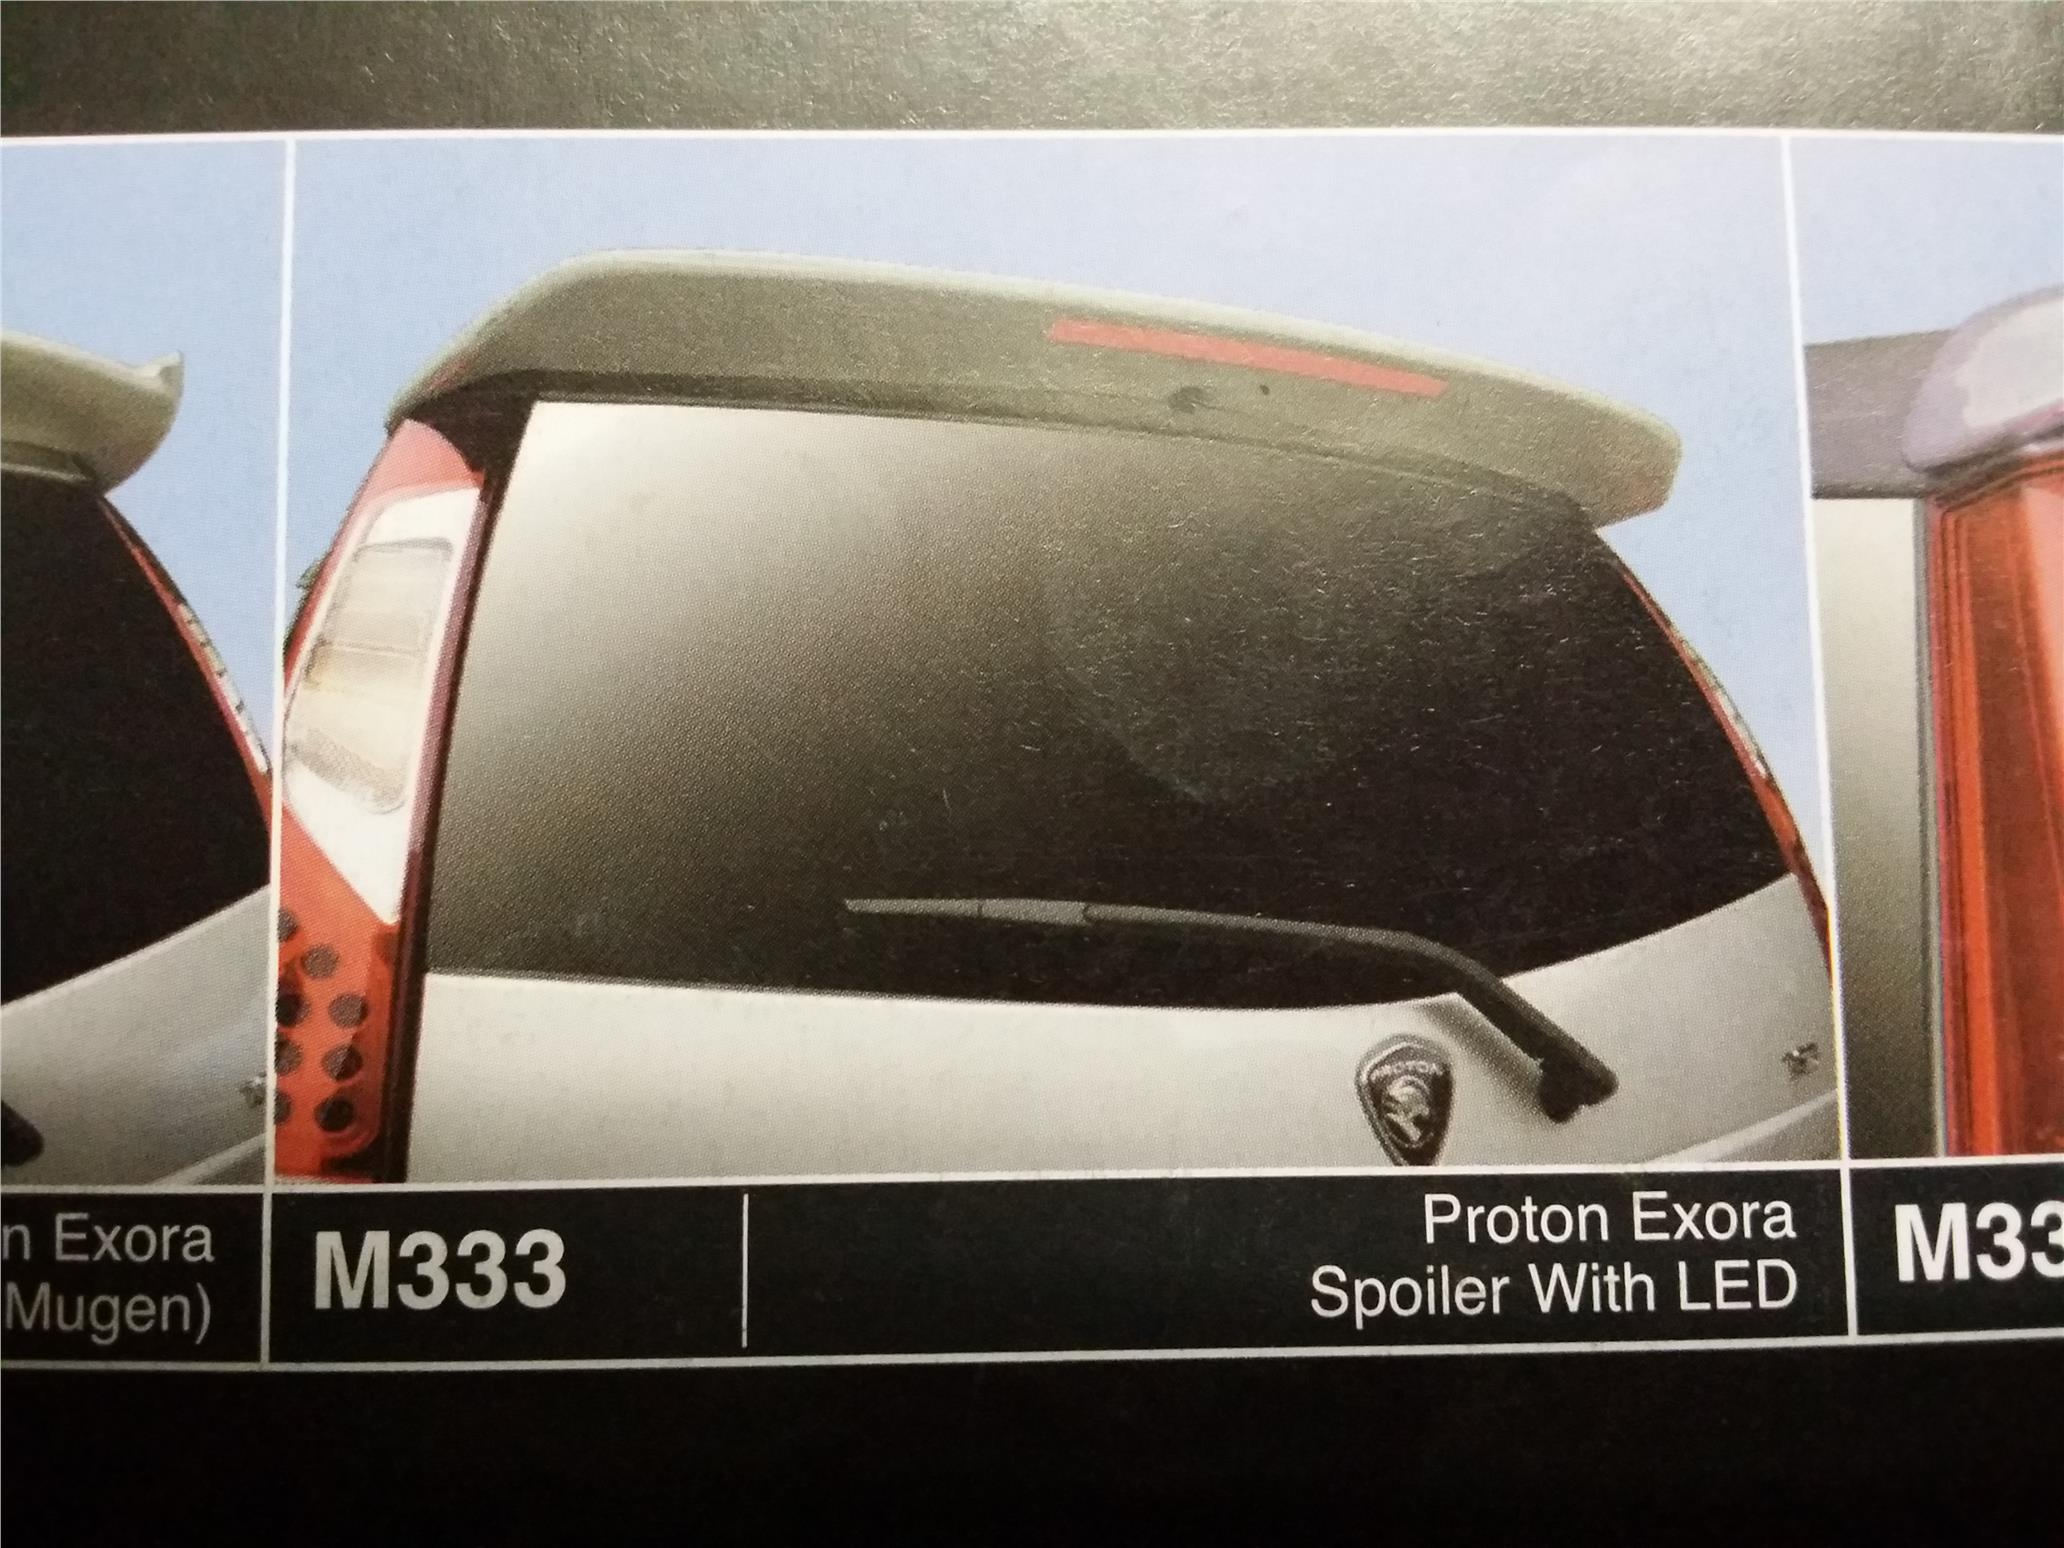 PROTON EXORA SPOILER WITH LED